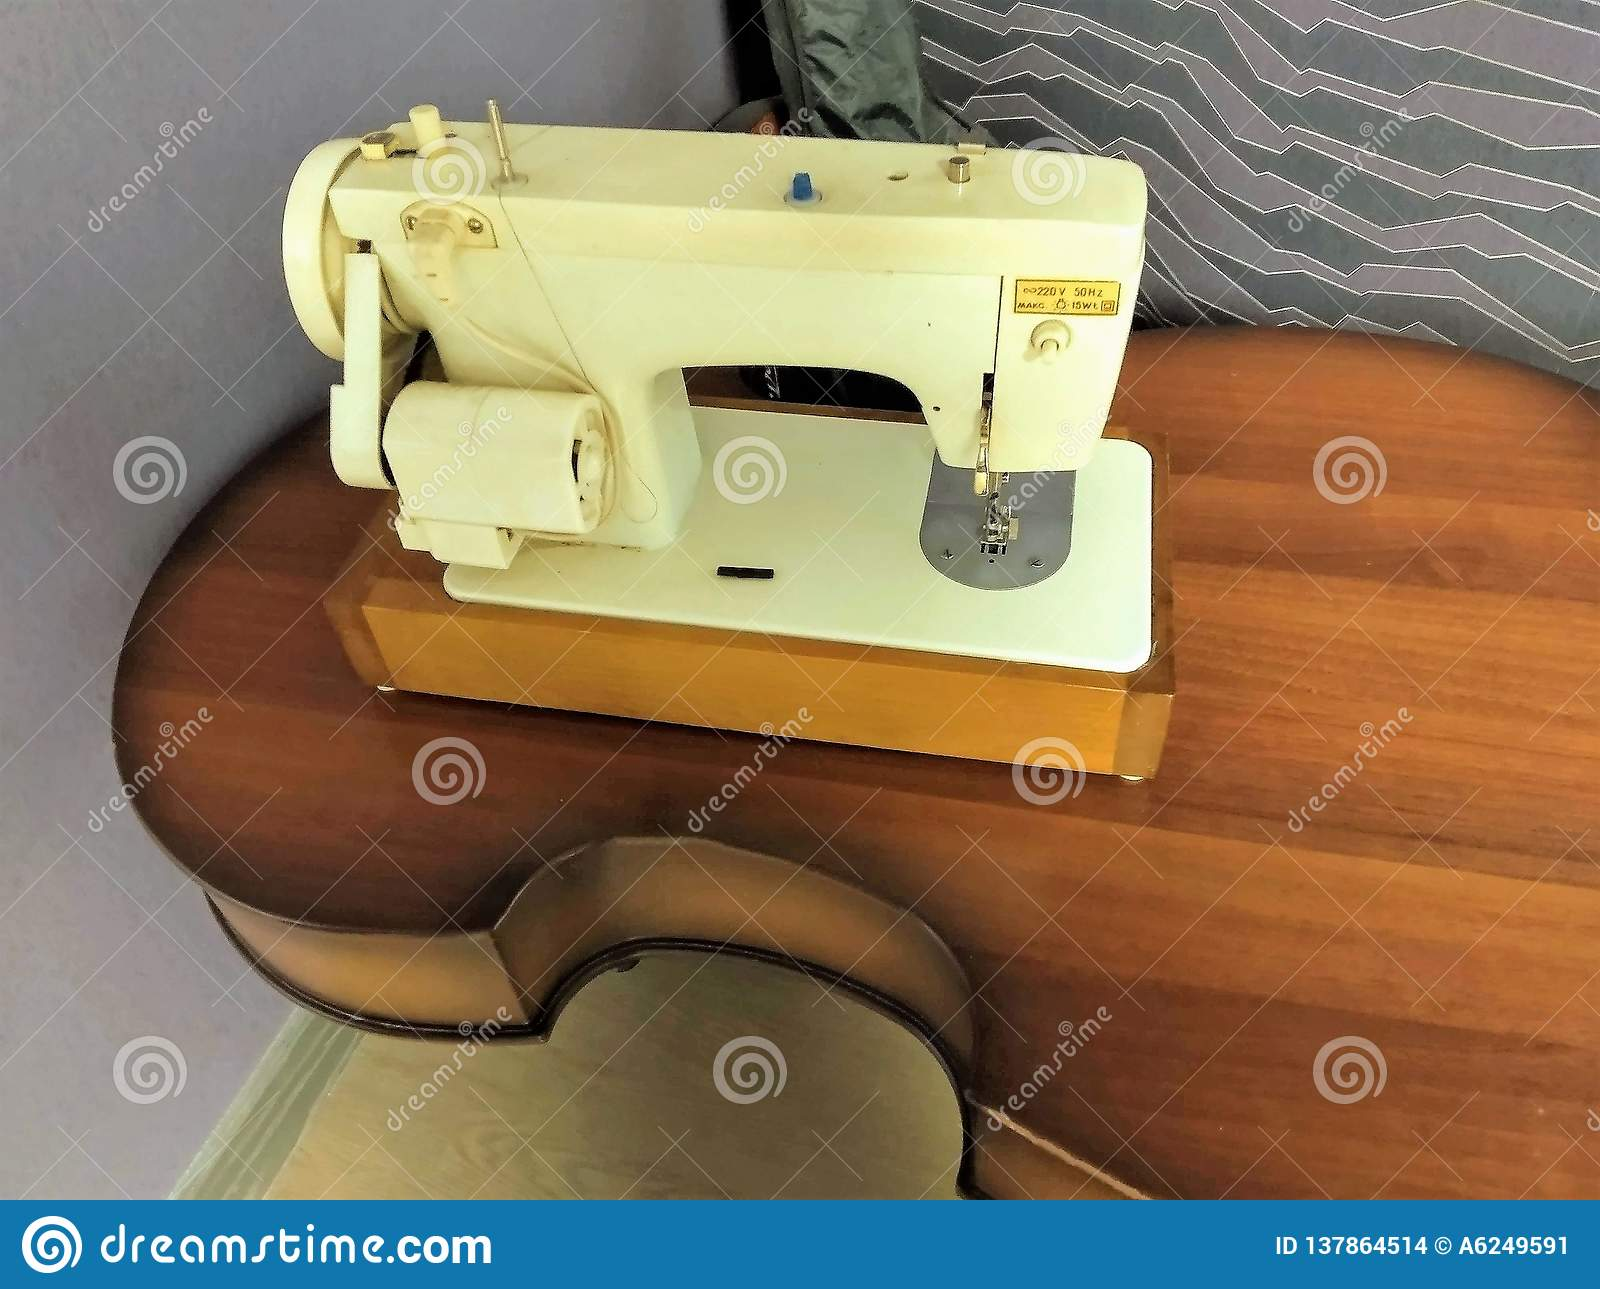 The electric sewing machine of white color costs on a brown wooden table from the old broken contrabass of a musical instrument,